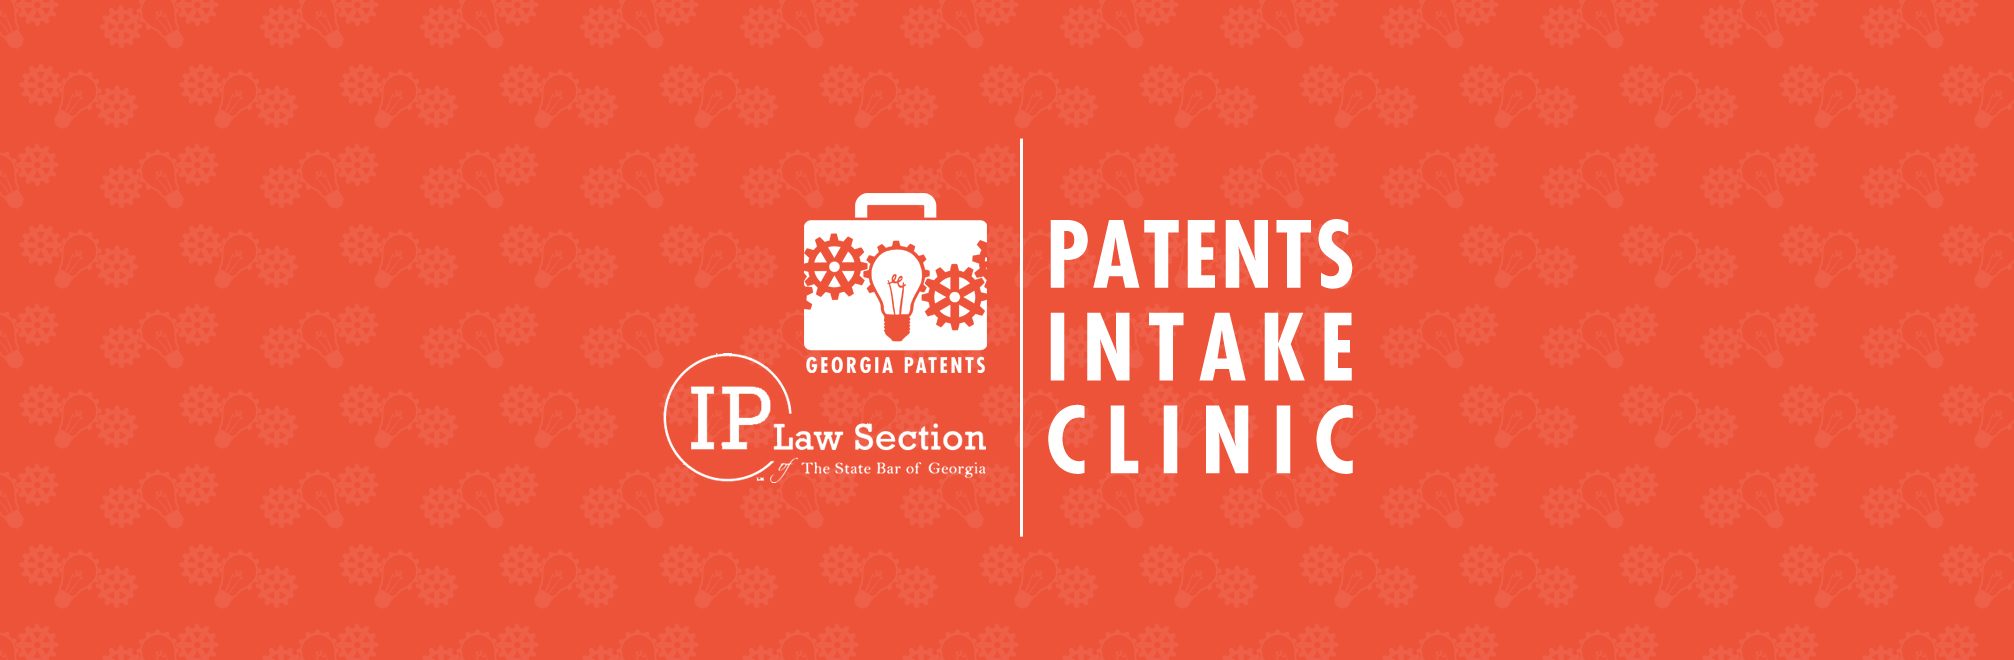 Patents Intake Clinic